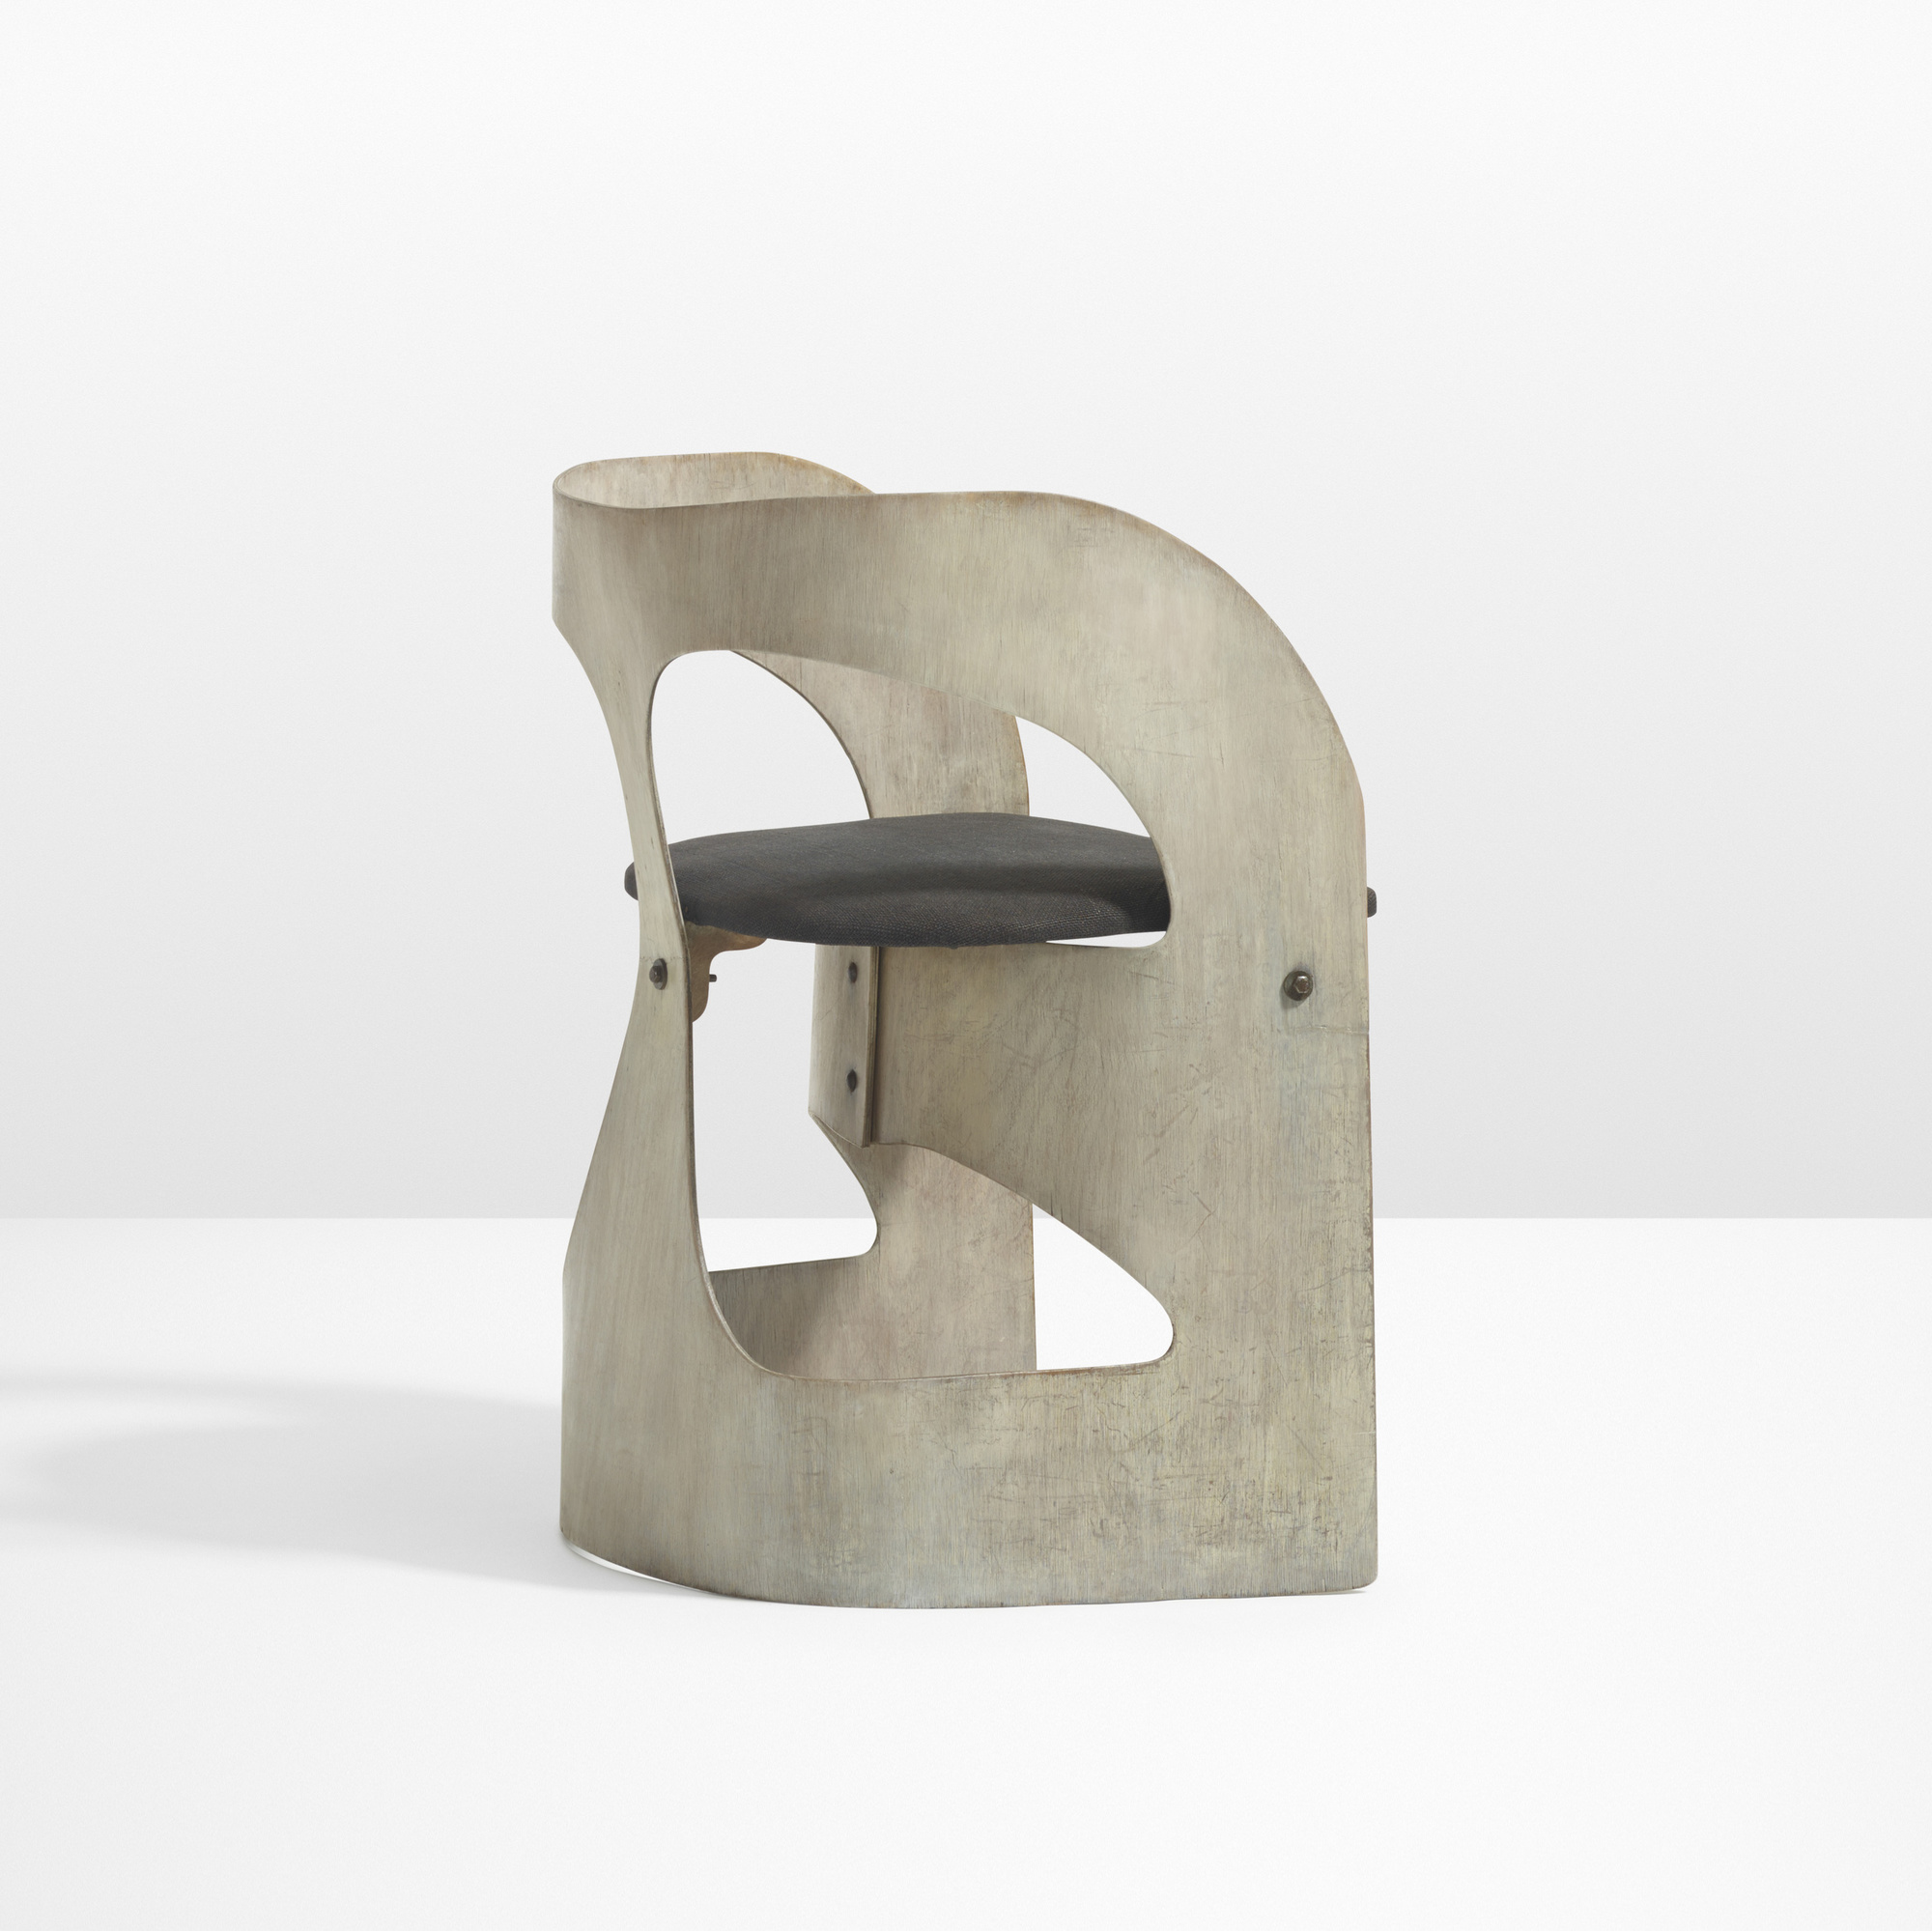 13: Gerald Summers / Rare Cut Ply Chair (CPC) (1 of 3)